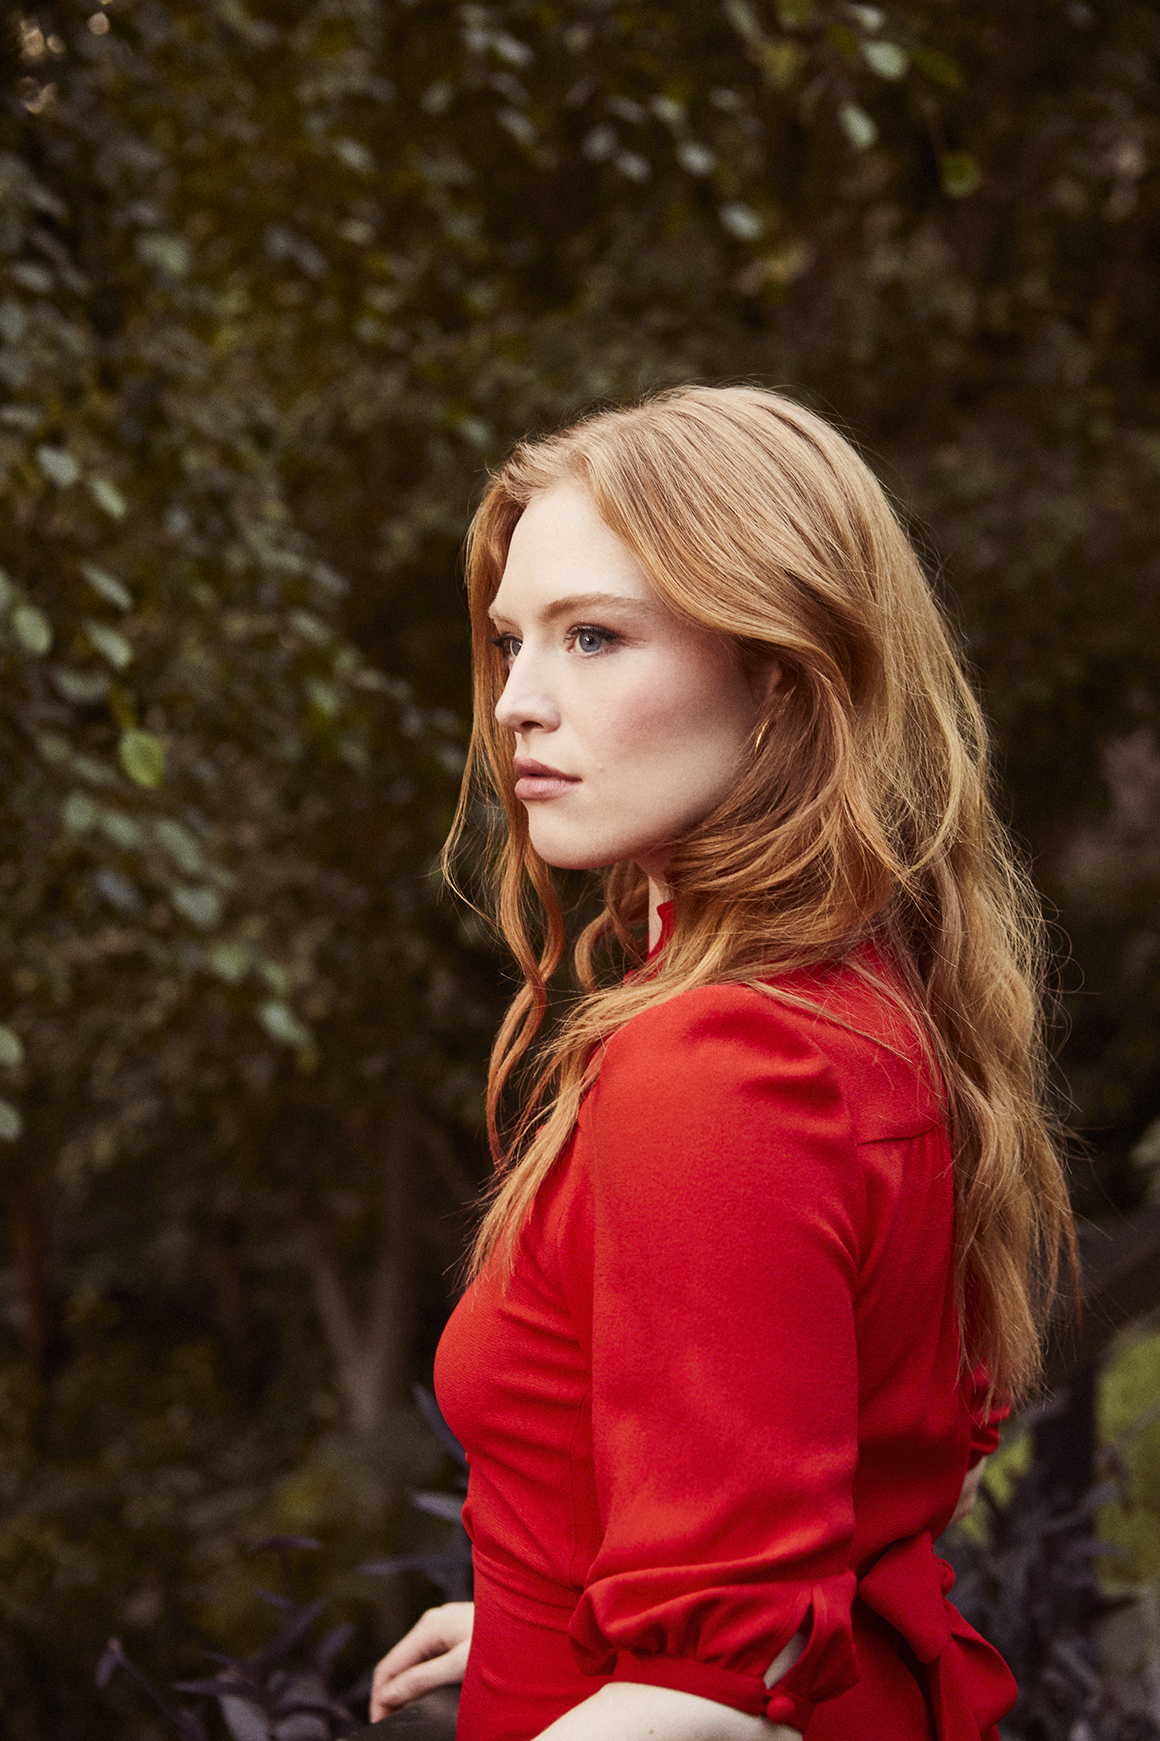 2019_01_11_FreyaRidings_902 RT 2.jpg